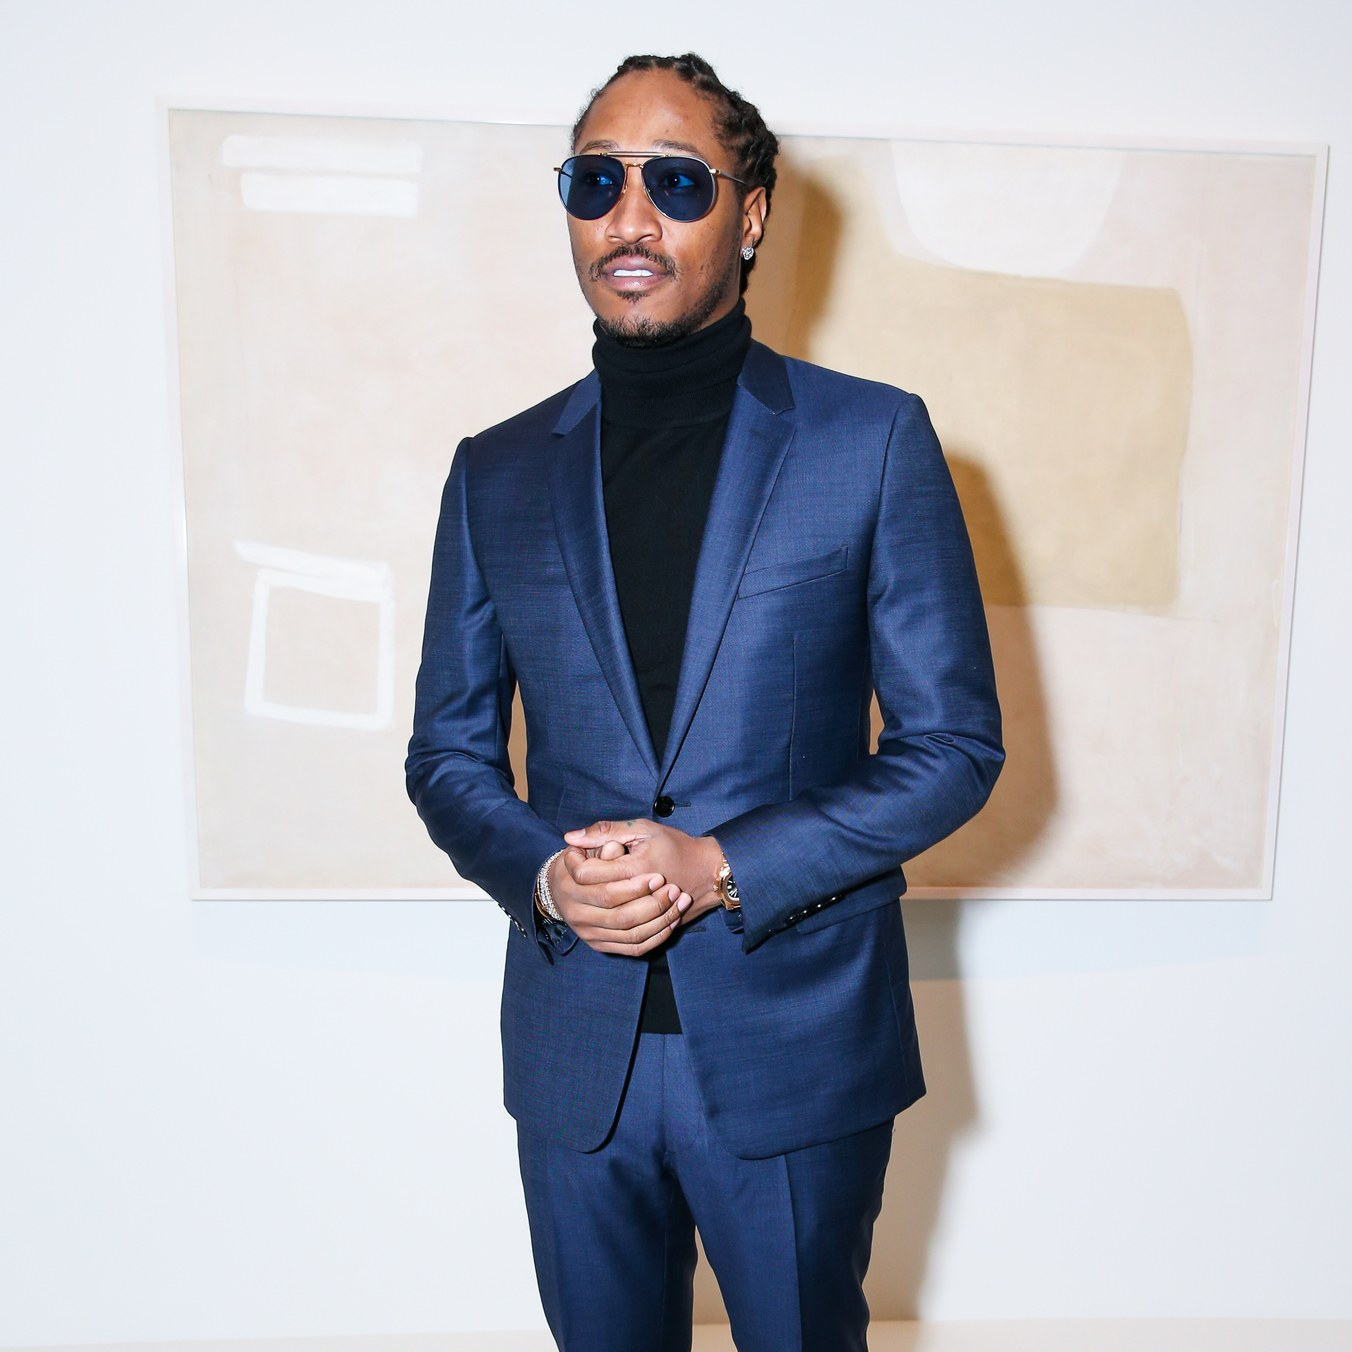 future-dior-homme-suit-thom-browne-glasses-7